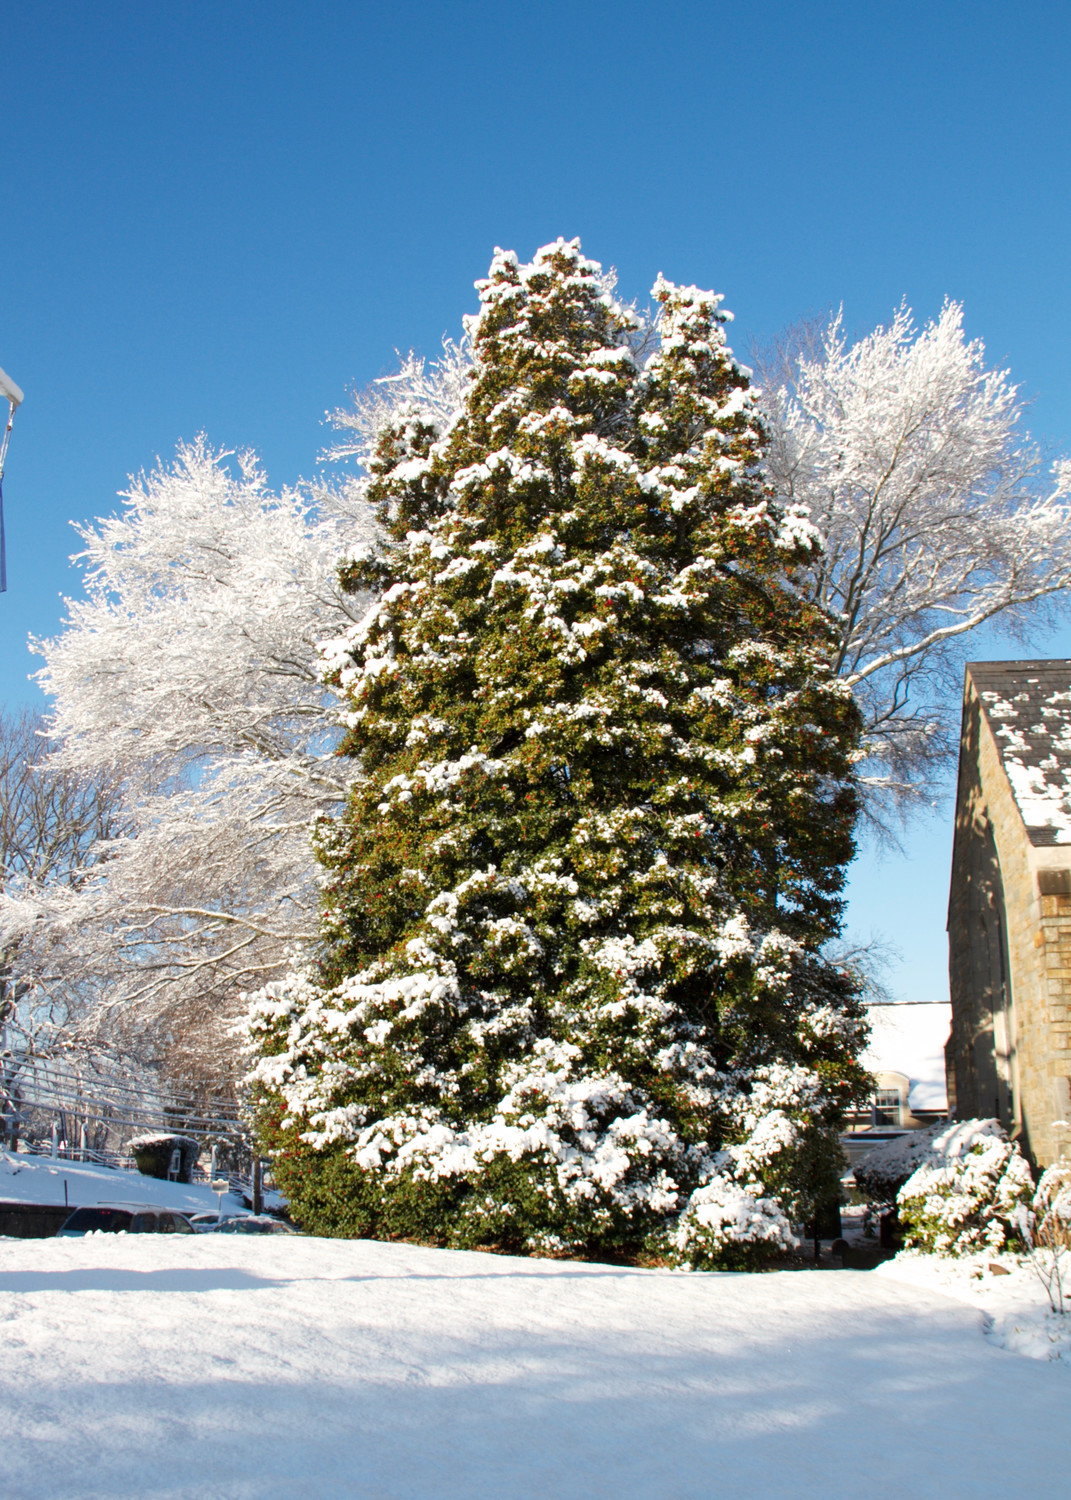 A holly tree in front of Christ Church is accented by snow covered trees surrounding it.